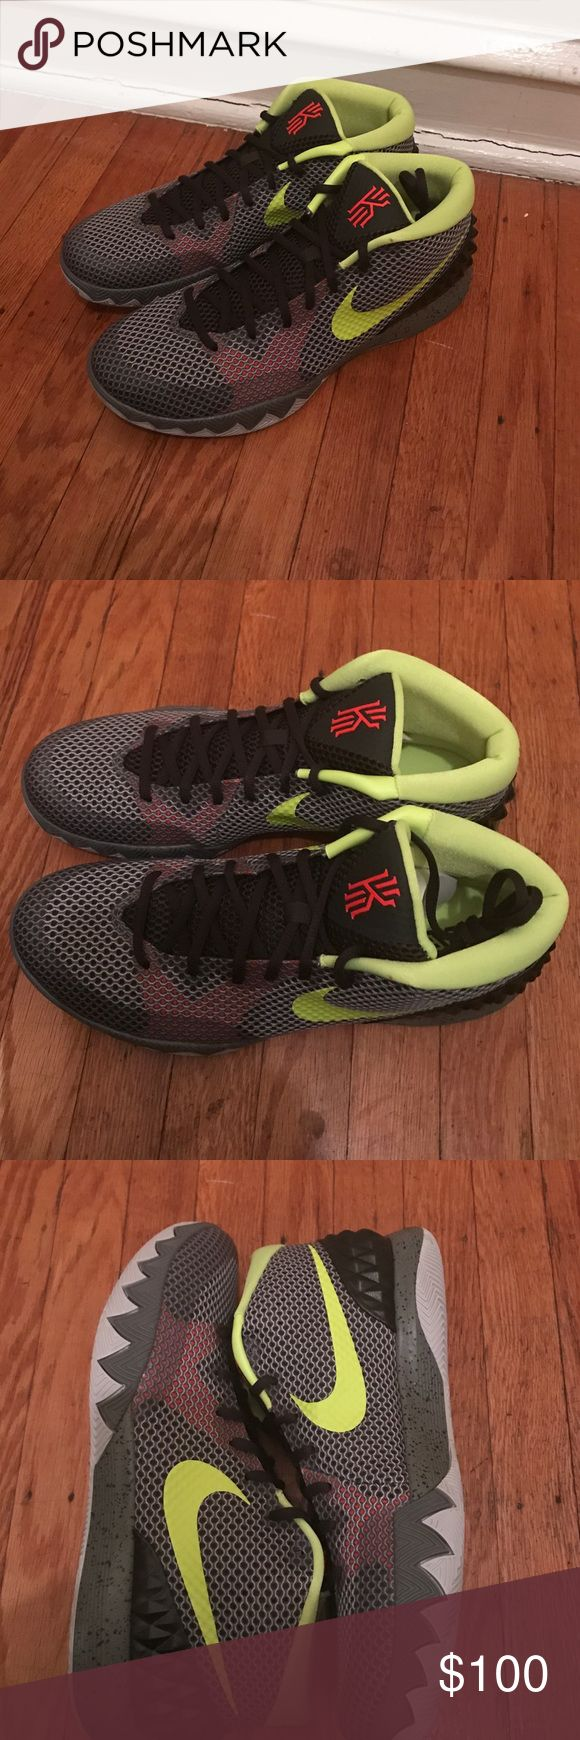 33 best nike kyrie 2 images on pinterest nike shoes nike kyrie